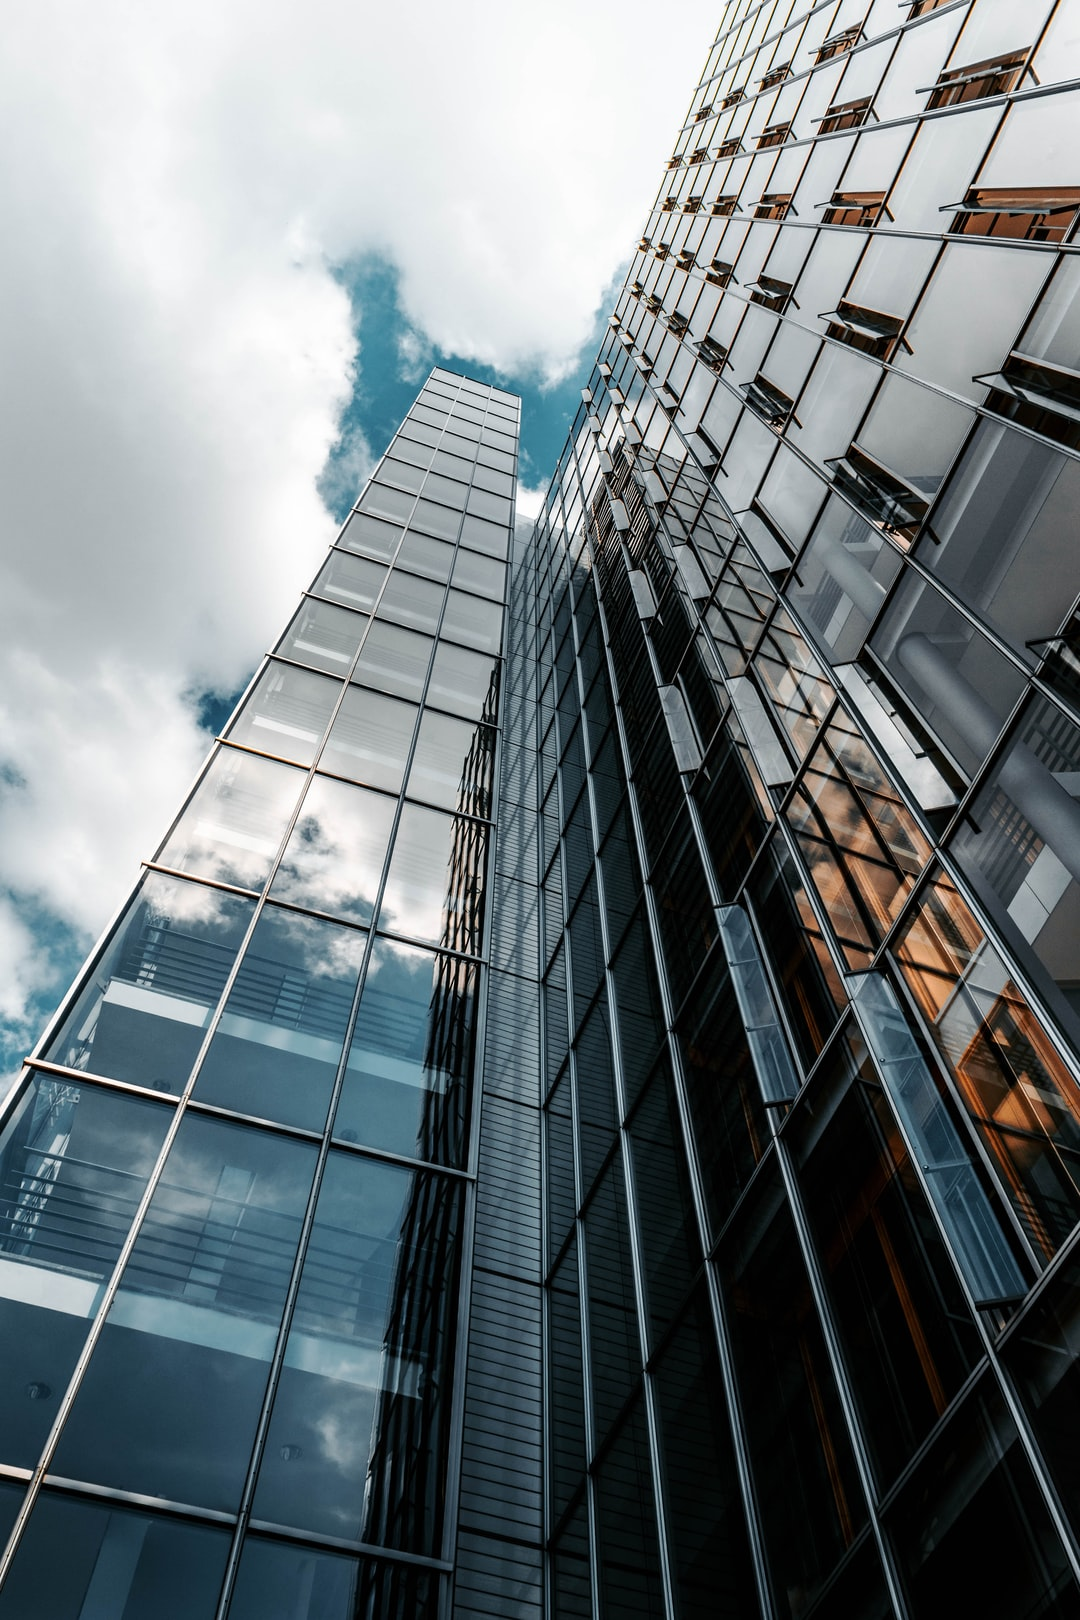 Modern office building with reflection in windows of the building